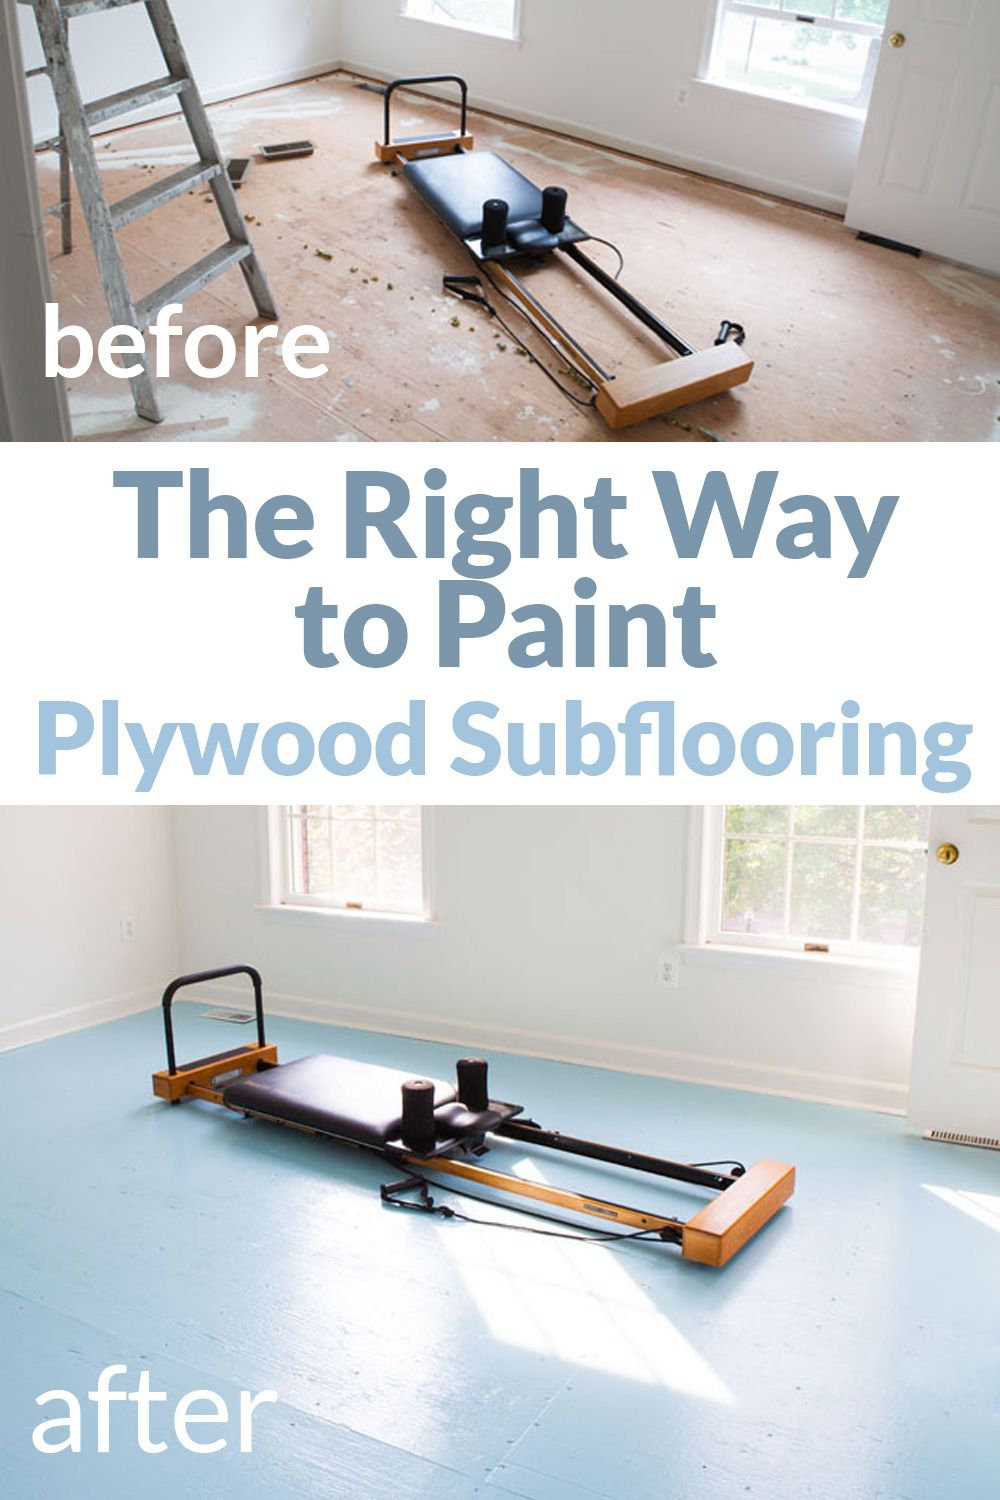 How To Paint Plywood Subfloor In 2020 Plywood Subfloor Plywood Flooring Painted Plywood Floors